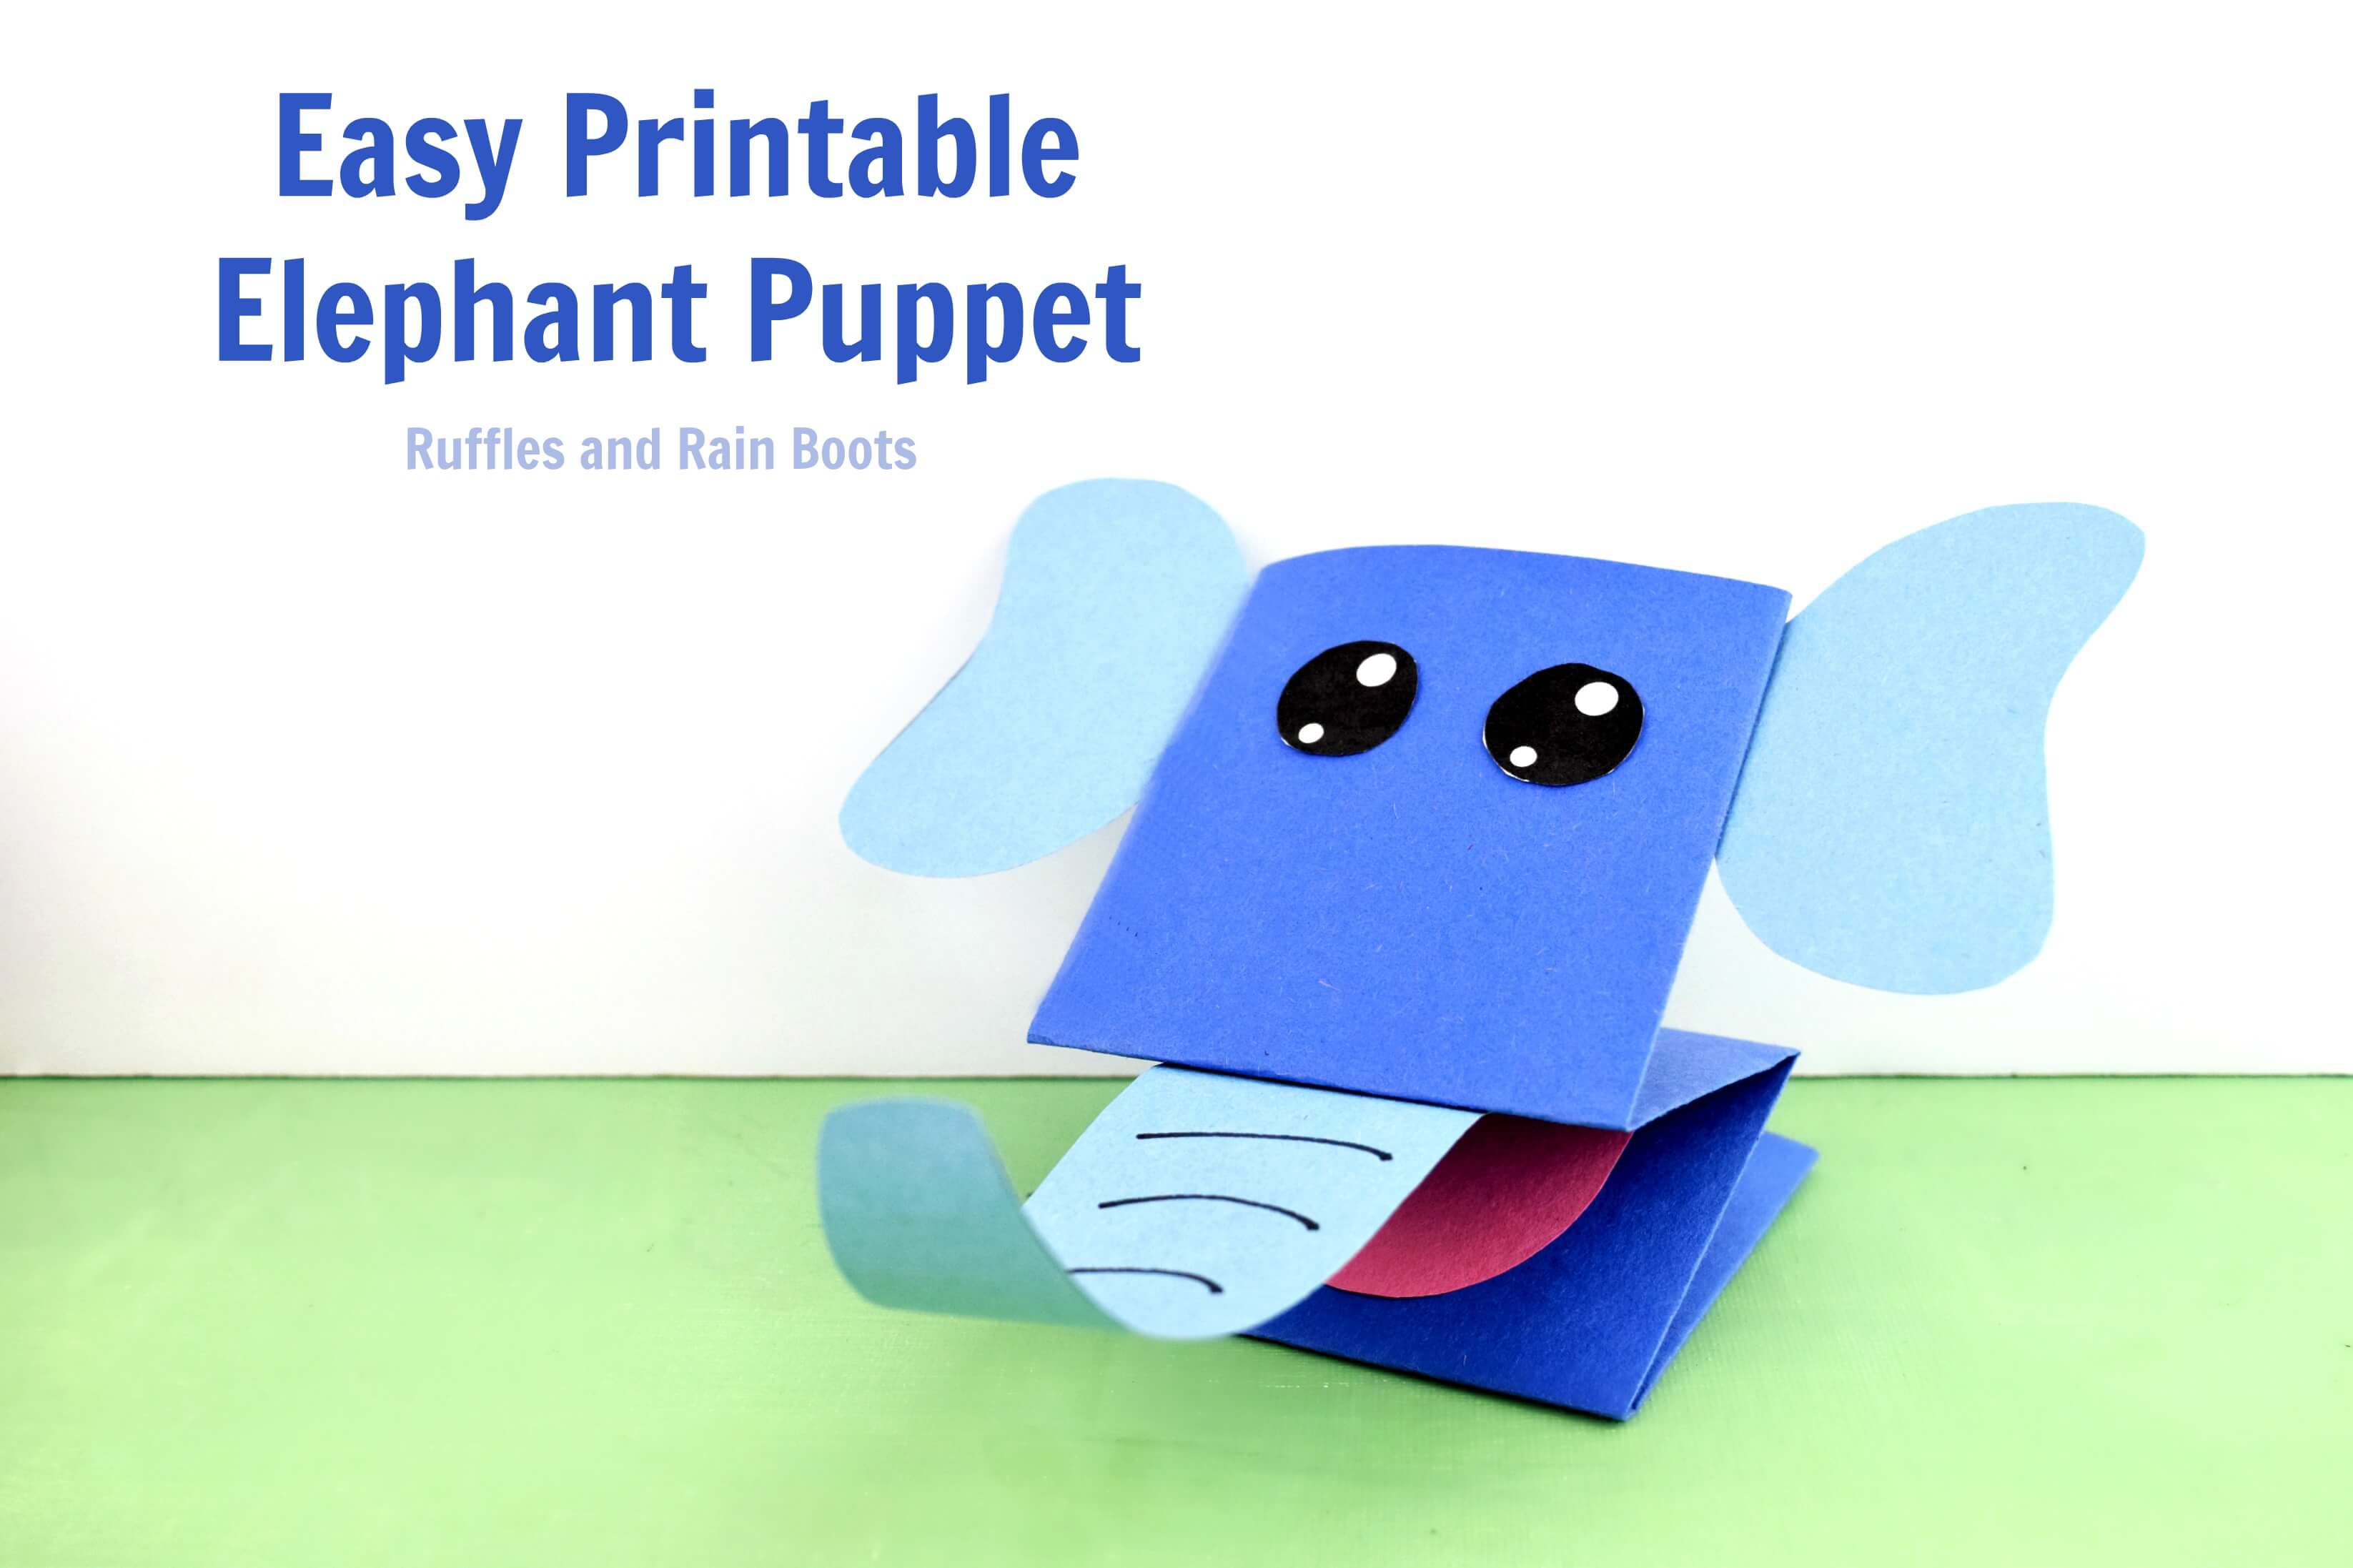 Easy Printable Paper Puppets for Kids Elephant